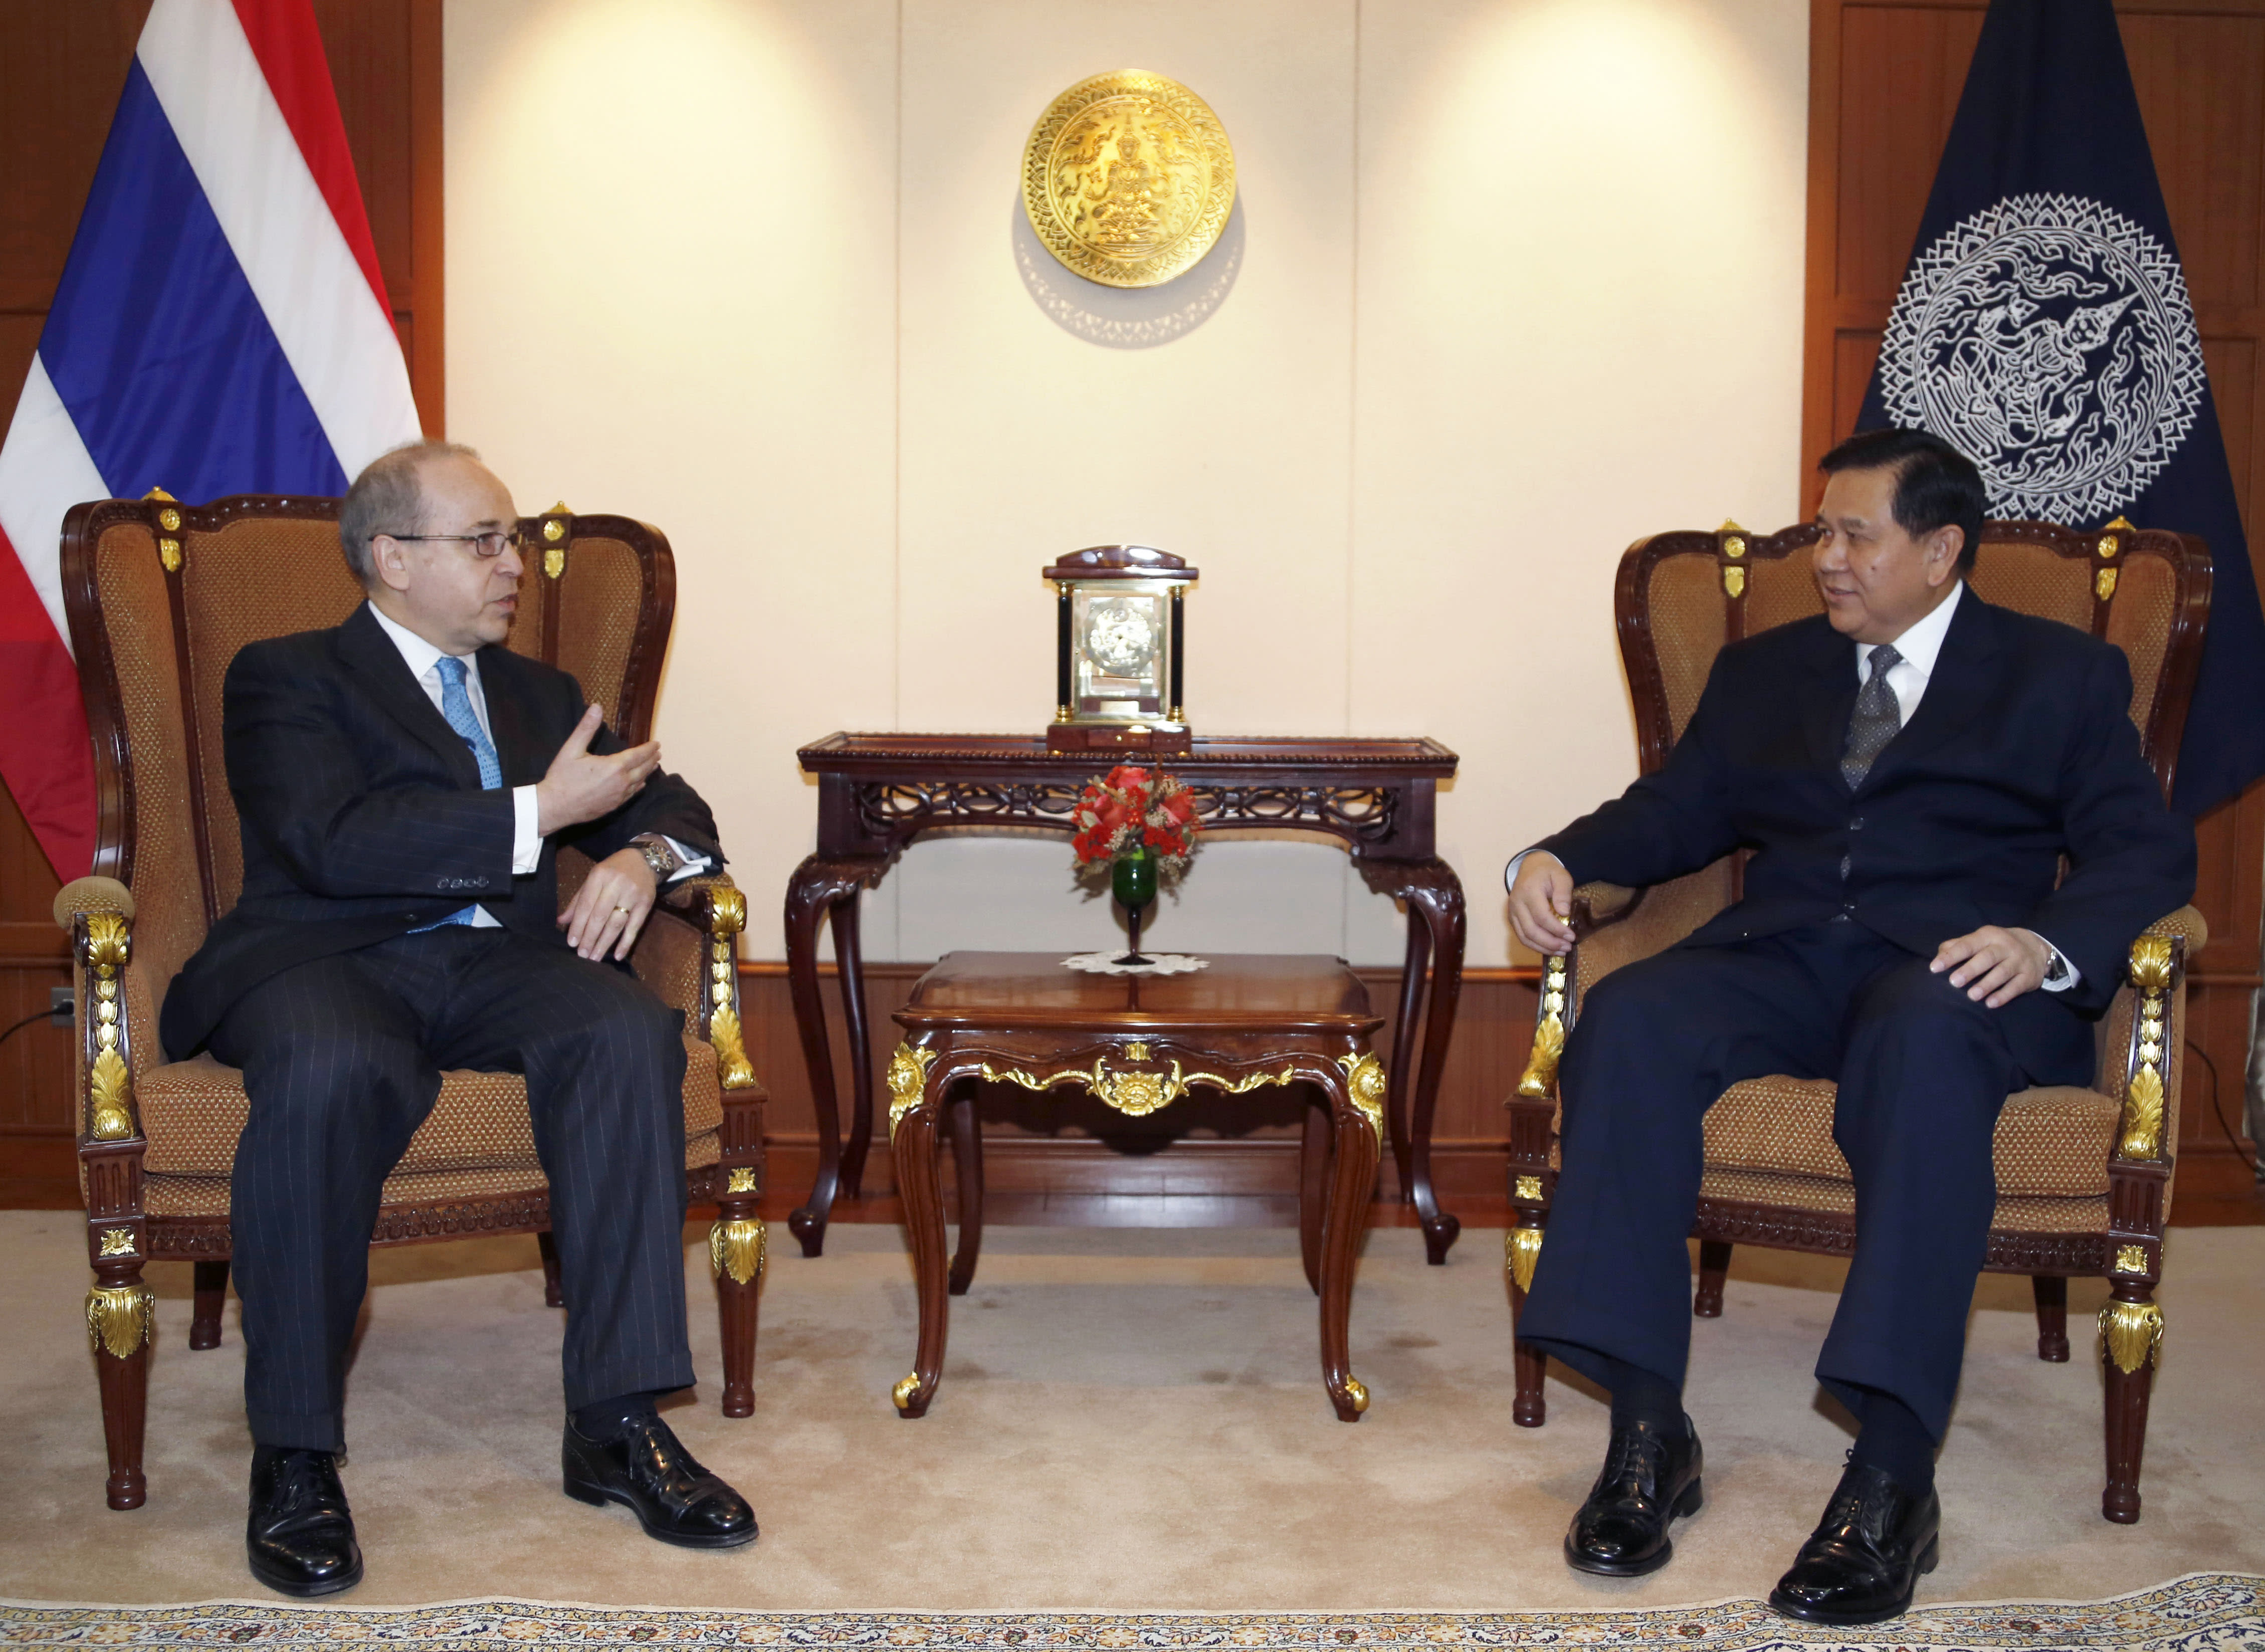 Thai junta tries to curb dissent and keep good terms with US